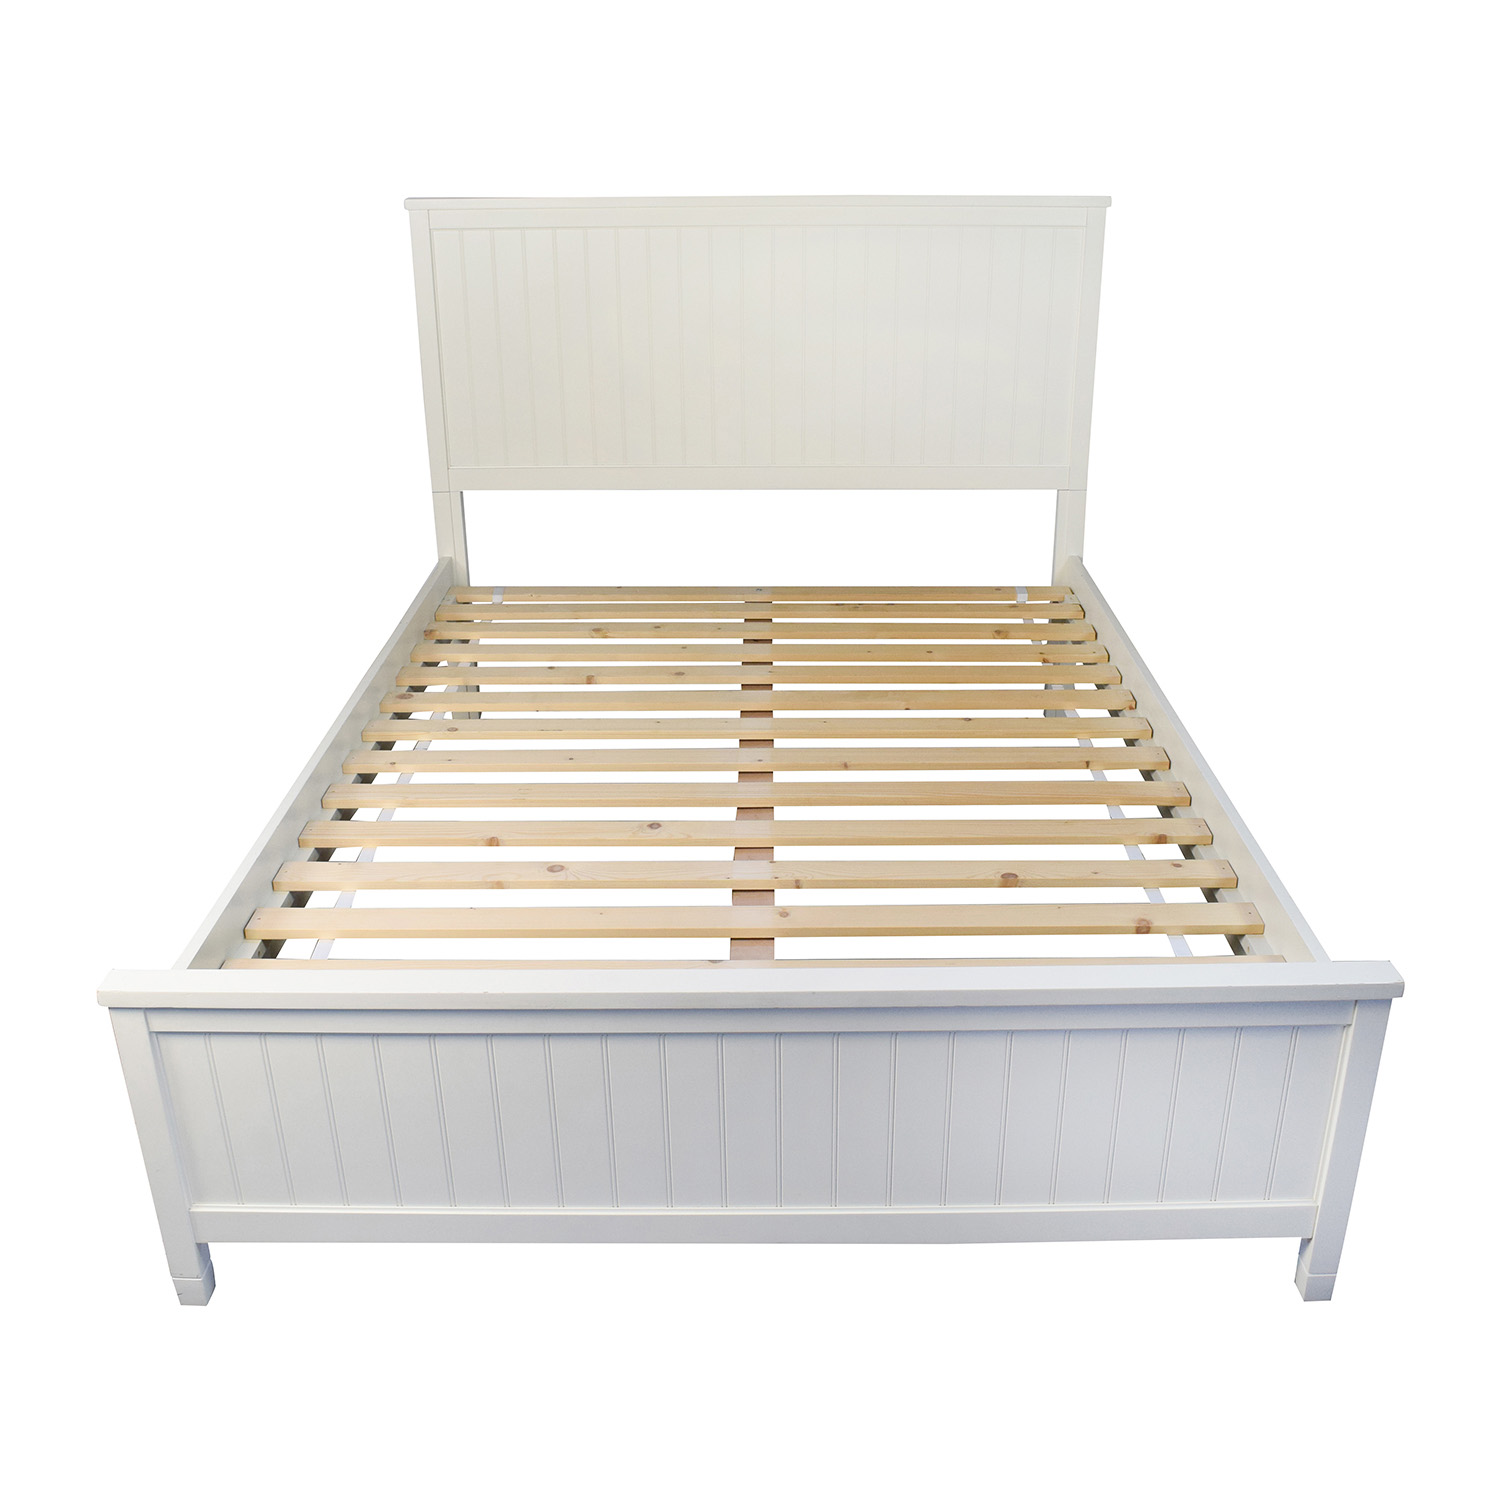 shop pottery barn wooden queen sized bed frame pottery barn bed frames - Used Bed Frames